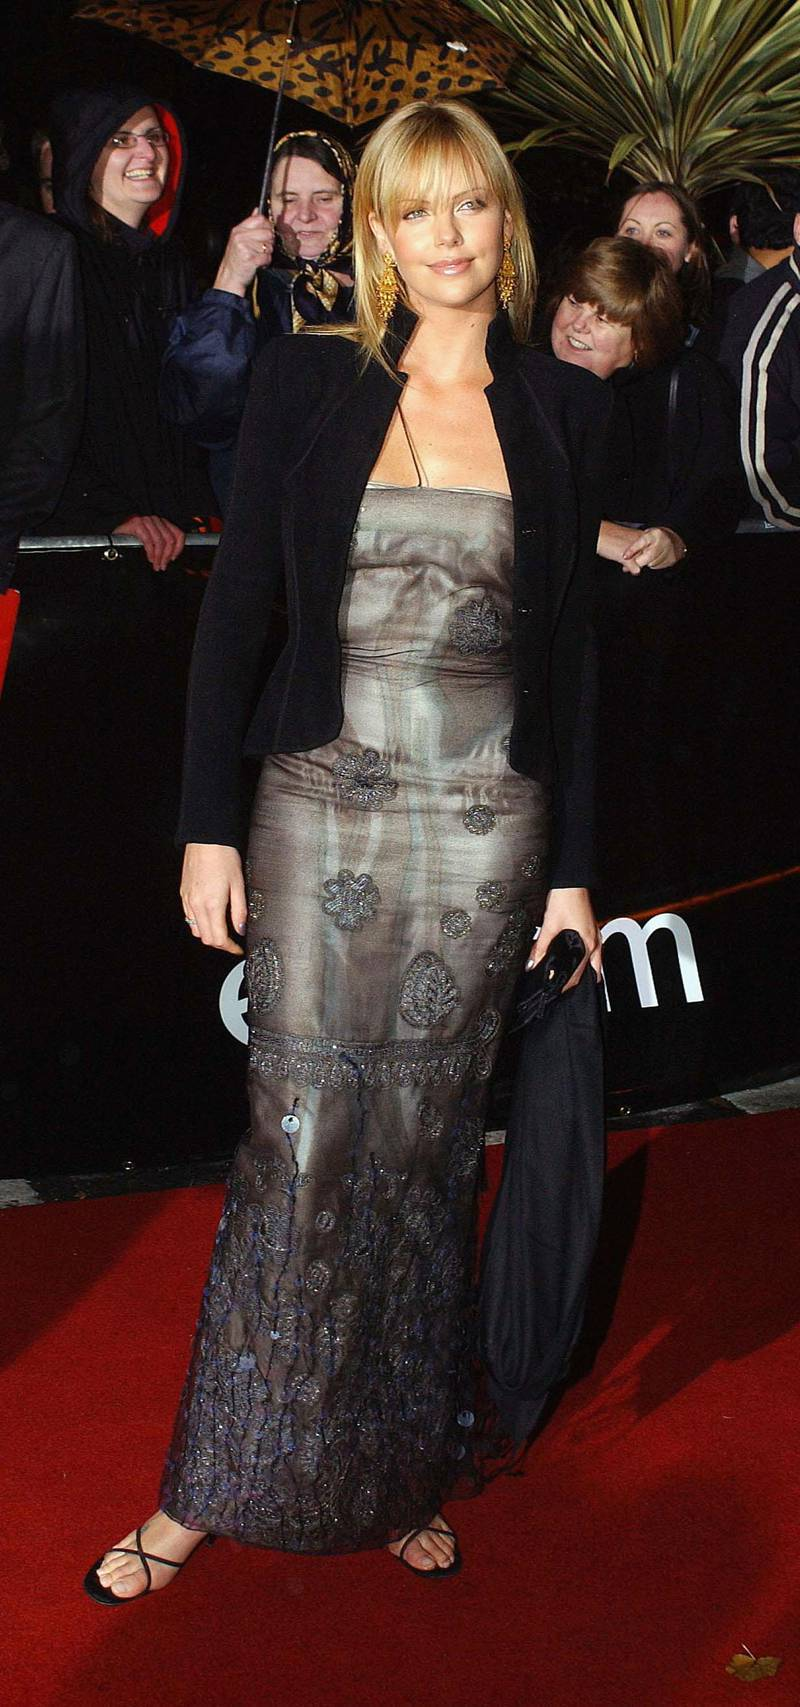 DUBLIN, IRELAND - NOVEMBER 1:  South African actress Charlize Theron attends the Irish Film and Television Awards at the Burlington Hotel on November 1, 2003 in Dublin, Ireland.  (Photo by ShowBizIreland/Getty Images)